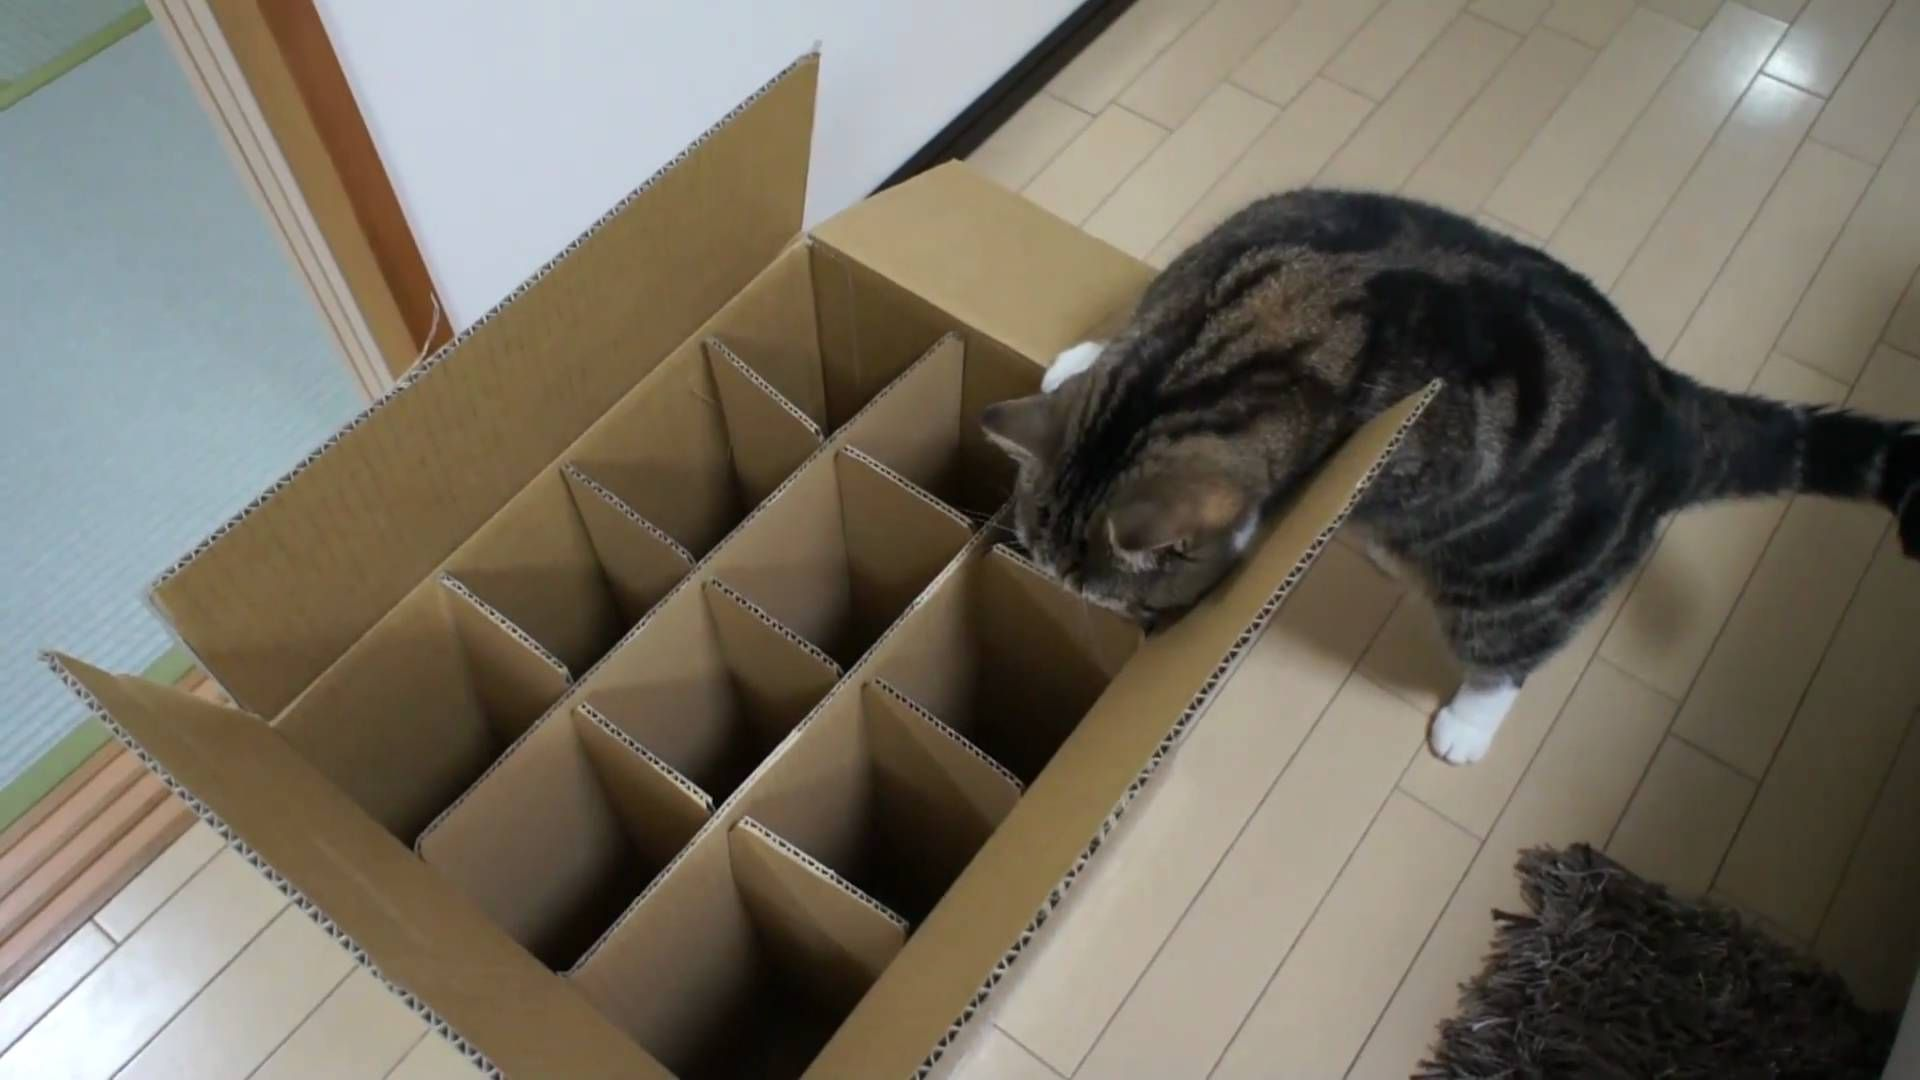 The box which Maro can't enter (Native Japan love this cat